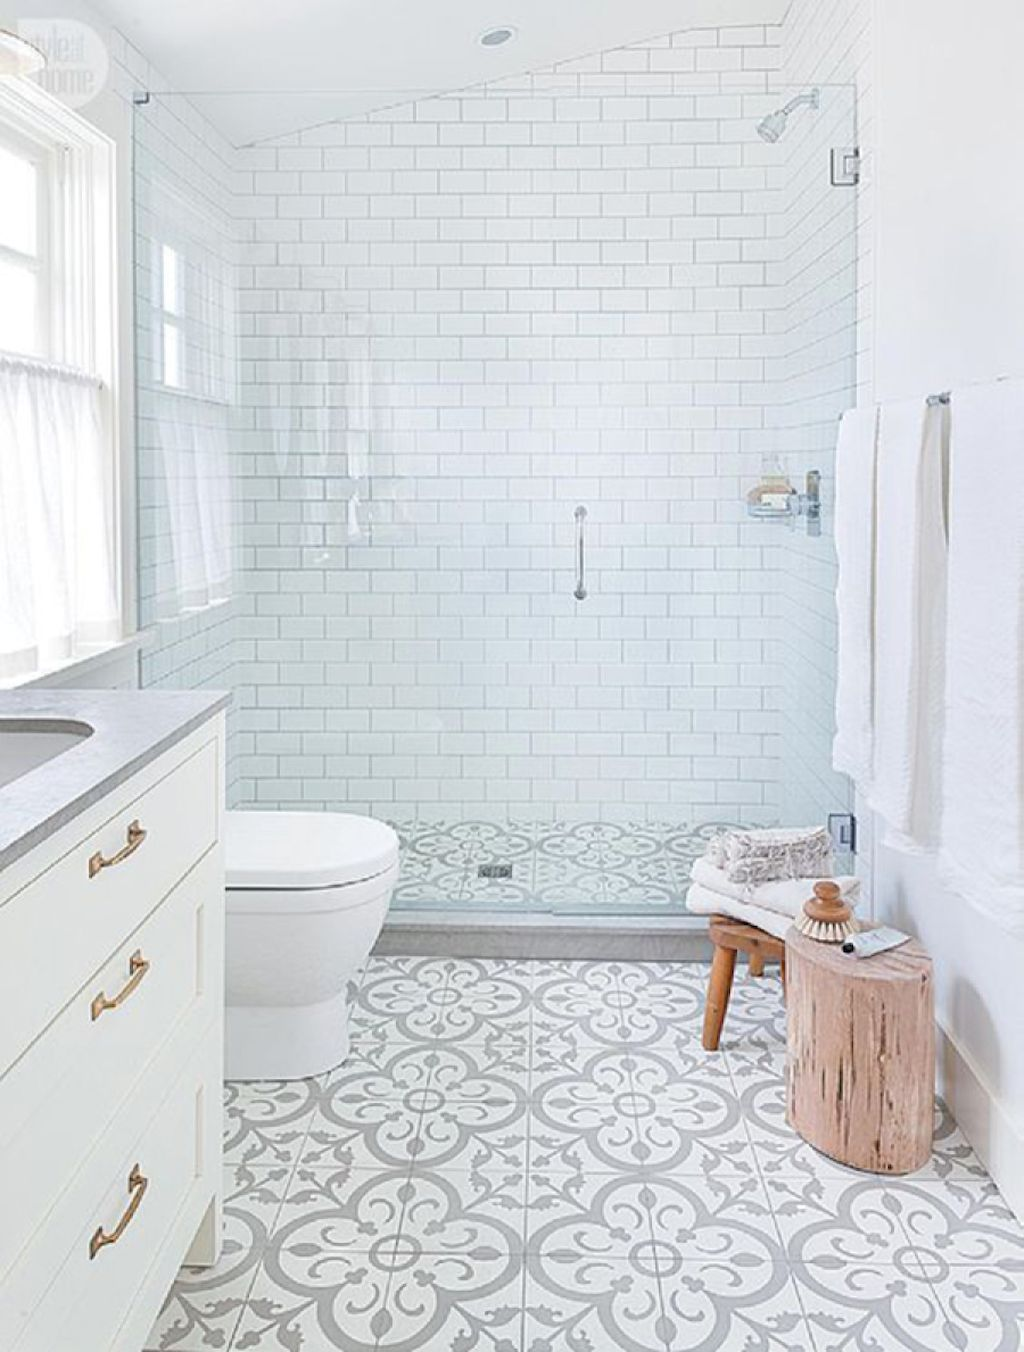 Best Inspire Bathroom Tile Pattern Ideas (8 | Tile patterns ...